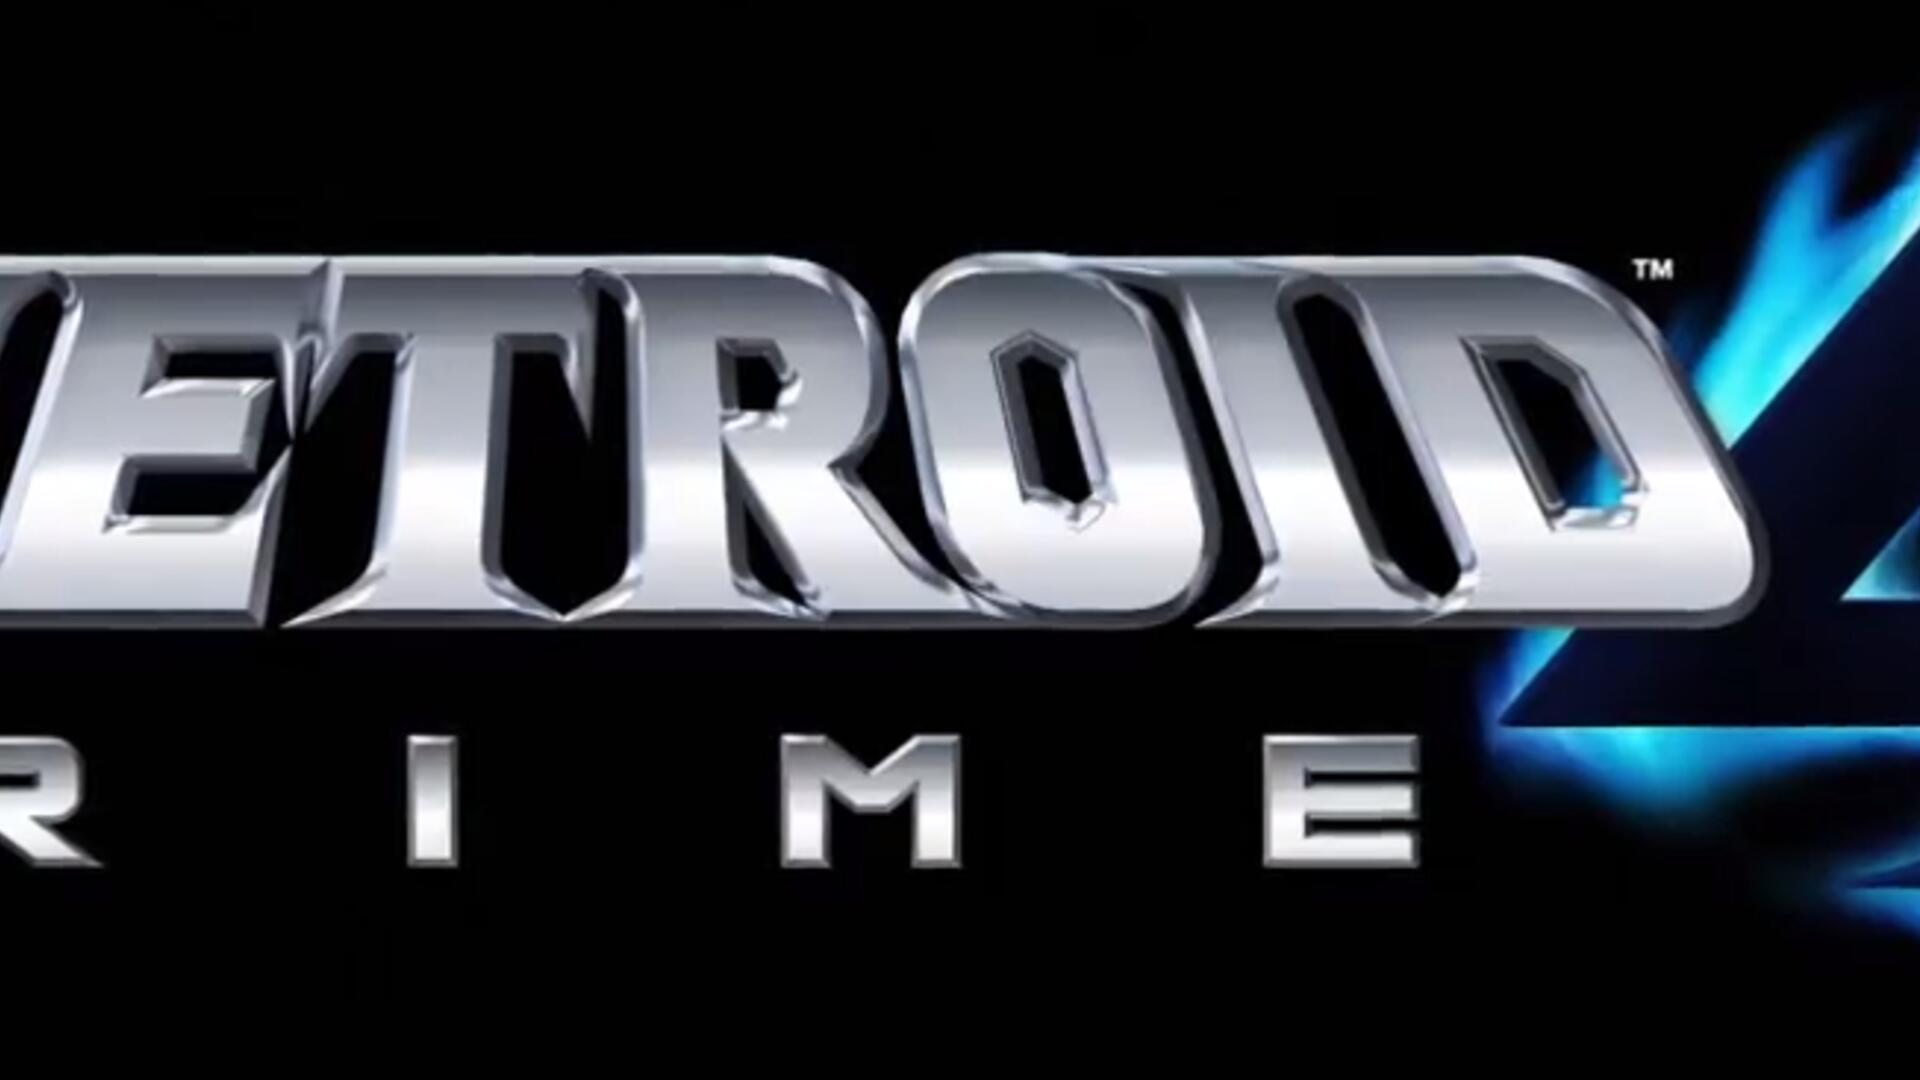 Fans Think Nintendo of America Boss Stealth Teased a Metroid Prime 4 Reveal for The Game Awards